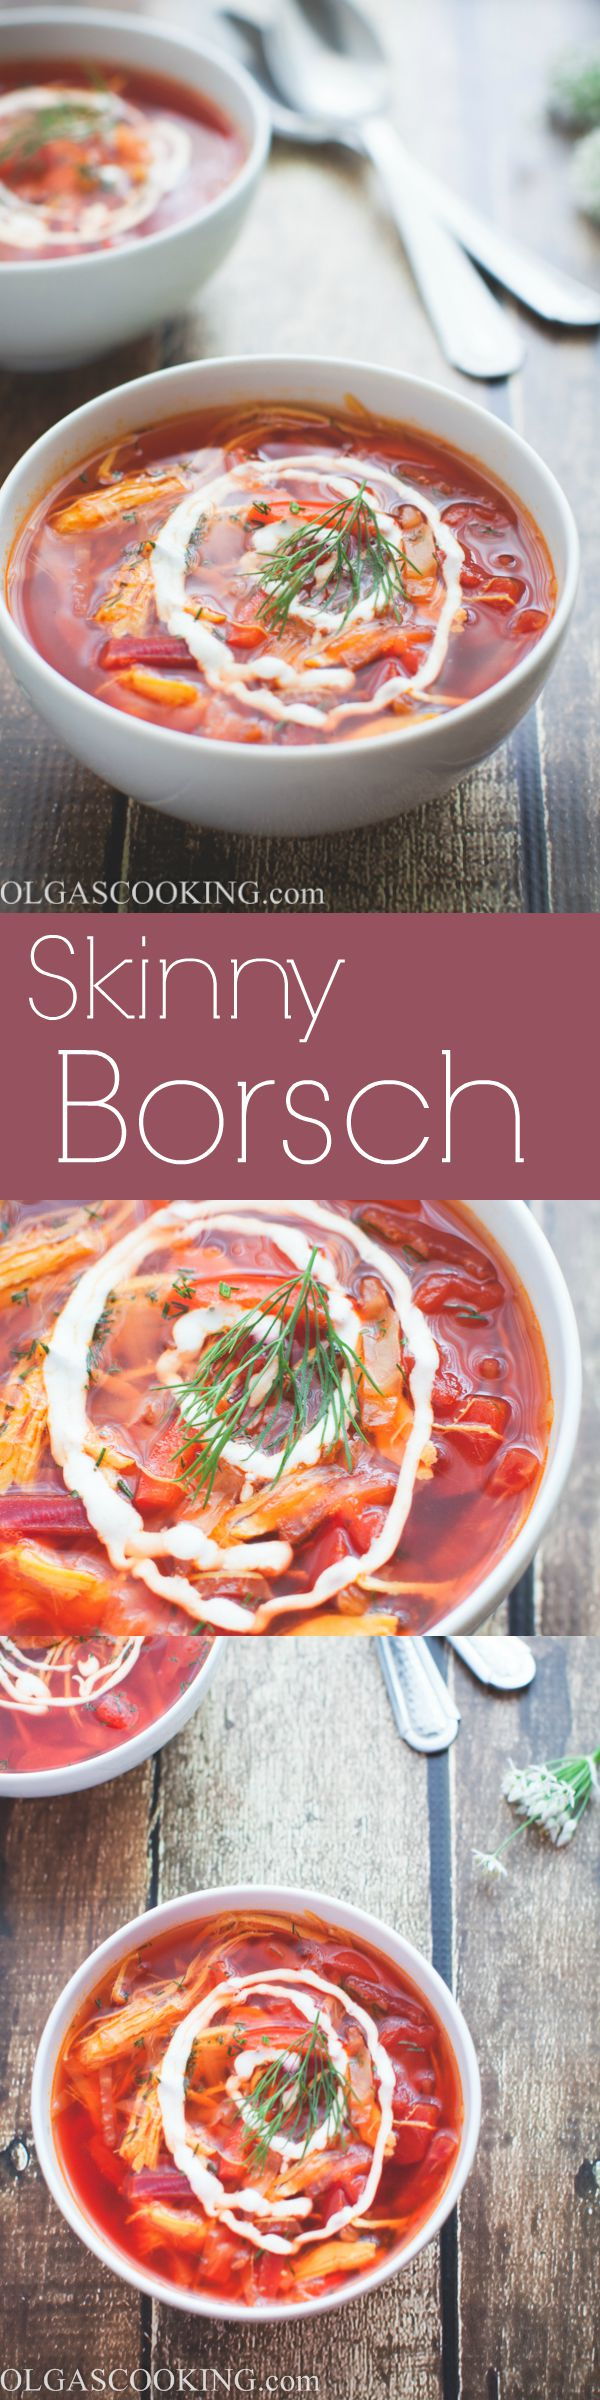 30-min Skinny Borsch. A healthier alternative to the traditional version!